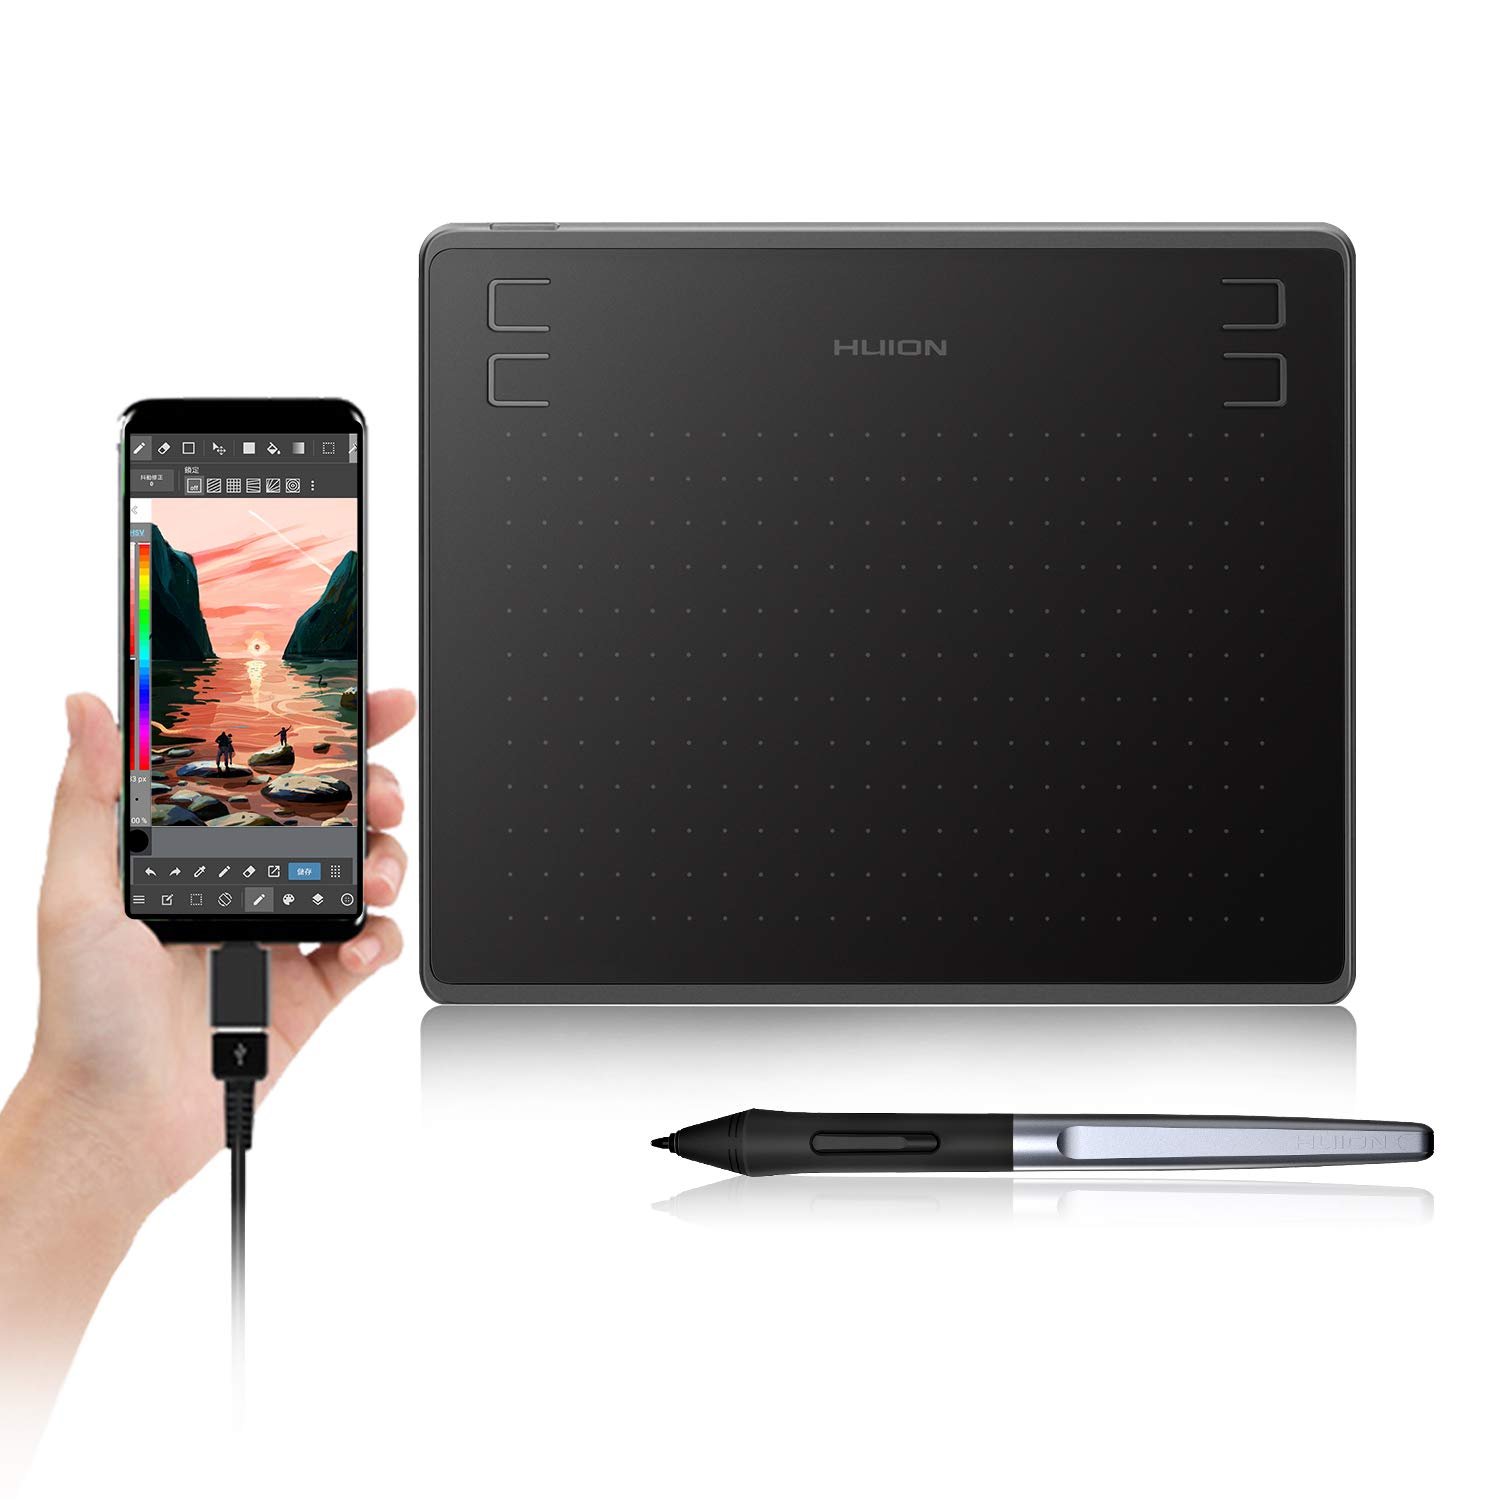 Huion HS64 Digital Graphics Drawing Tablet with Battery-Free Stylus and 4 Express Keys, 8192 Pressure Sensitivity, Compatible with Mac, PC or Android Mobile